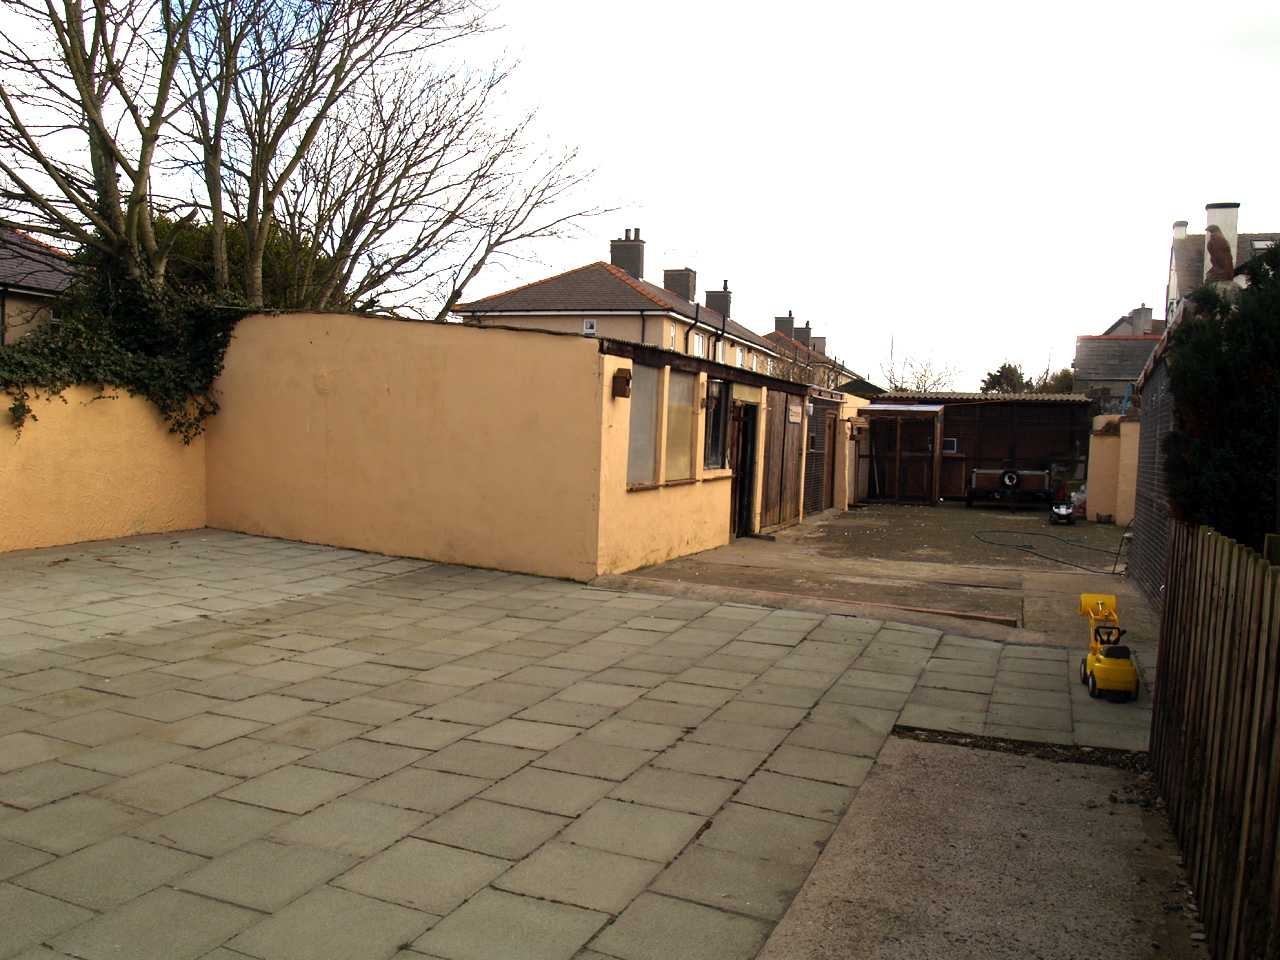 Yard and workshops at back of house with multiple uses in house for sale in Holyhead2